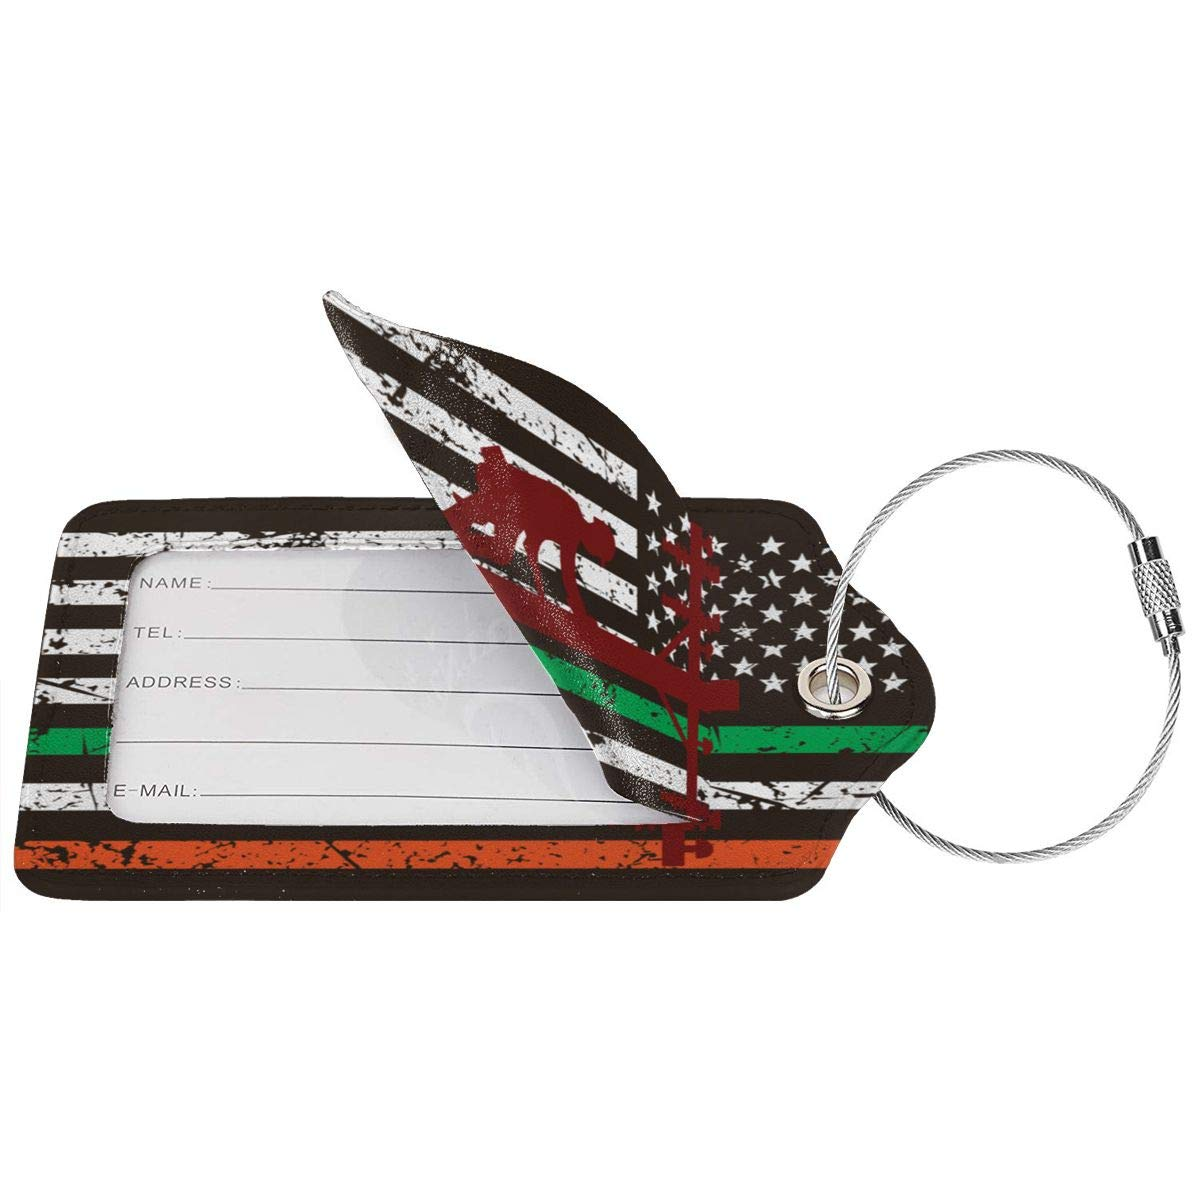 GoldK Lineman Vintage Irish Flag Leather Luggage Tags Baggage Bag Instrument Tag Travel Labels Accessories with Privacy Cover